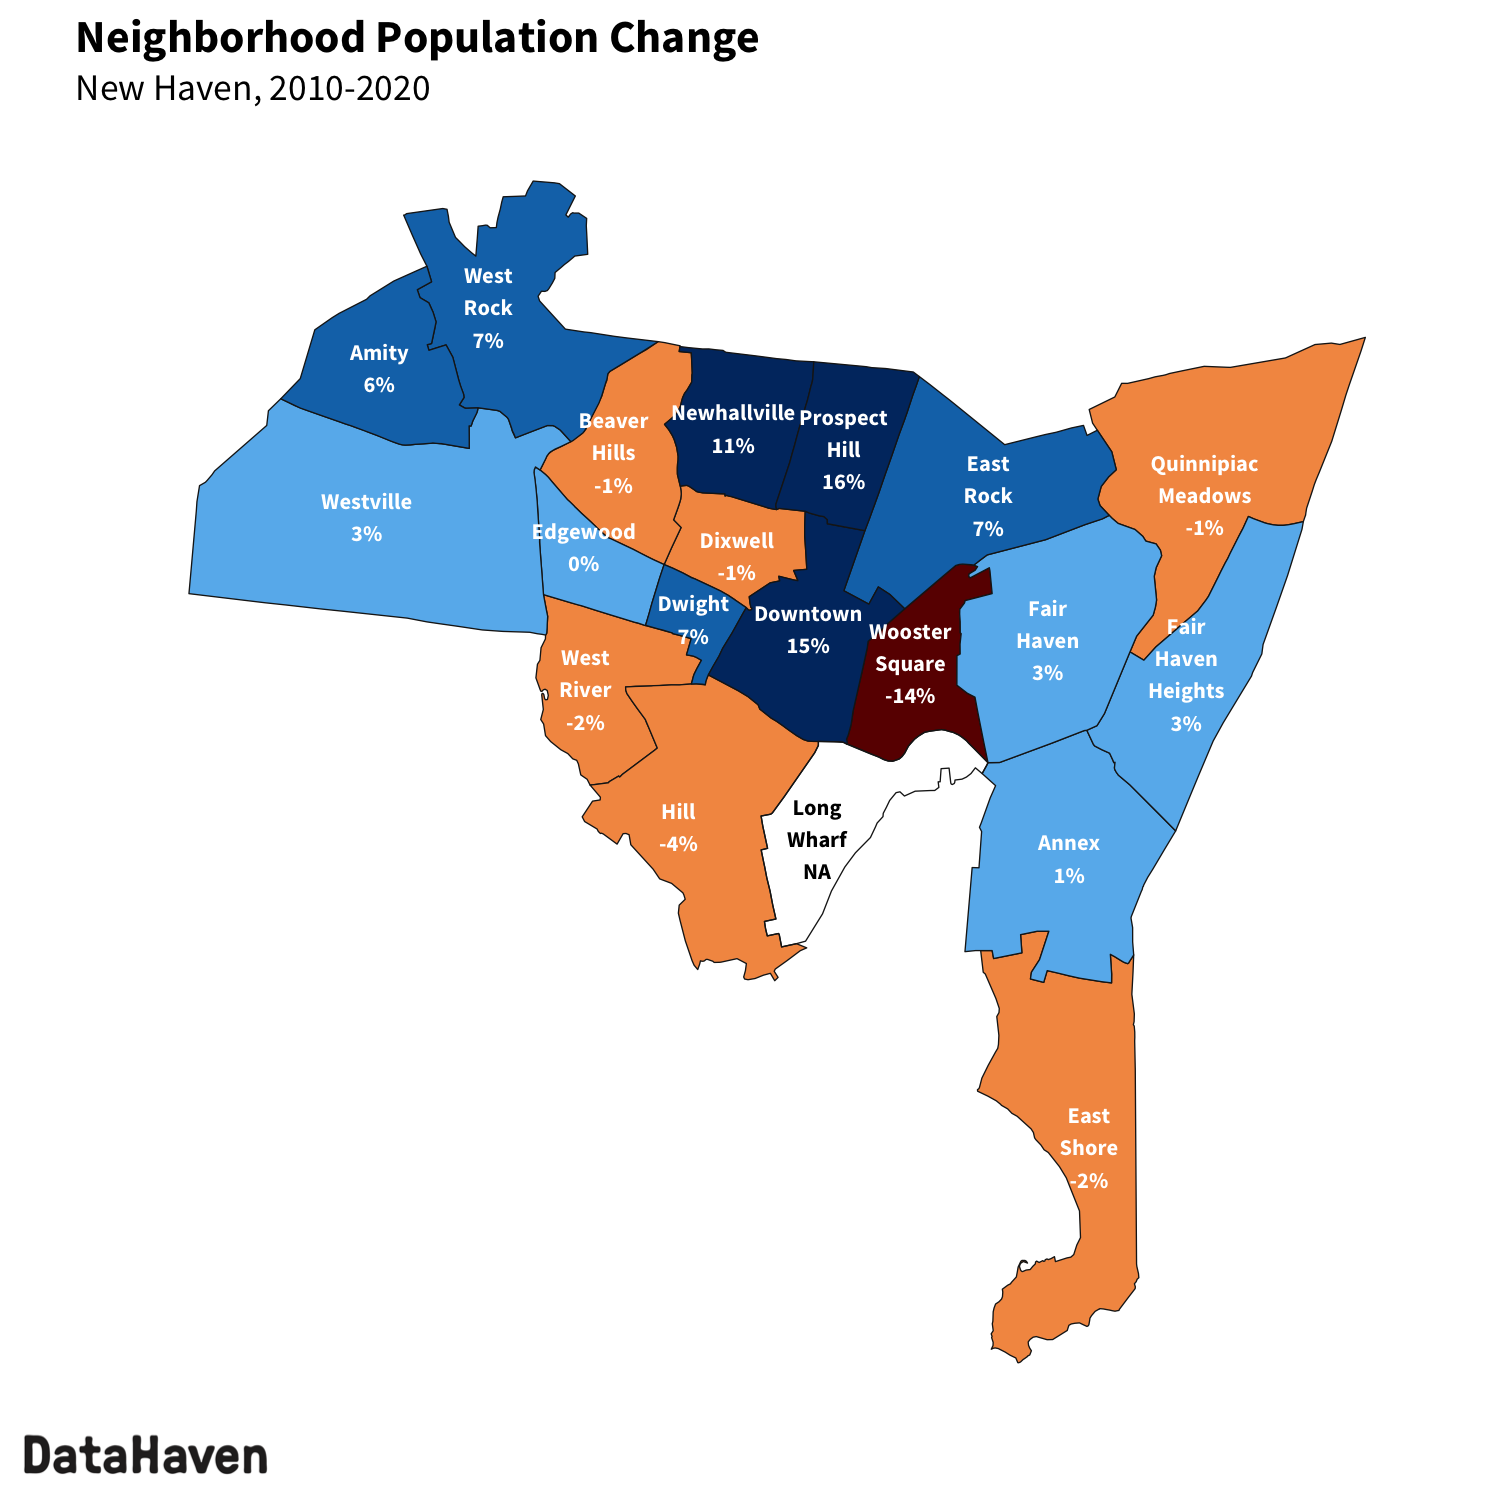 New Haven change in population from 2010 to 2020 Census